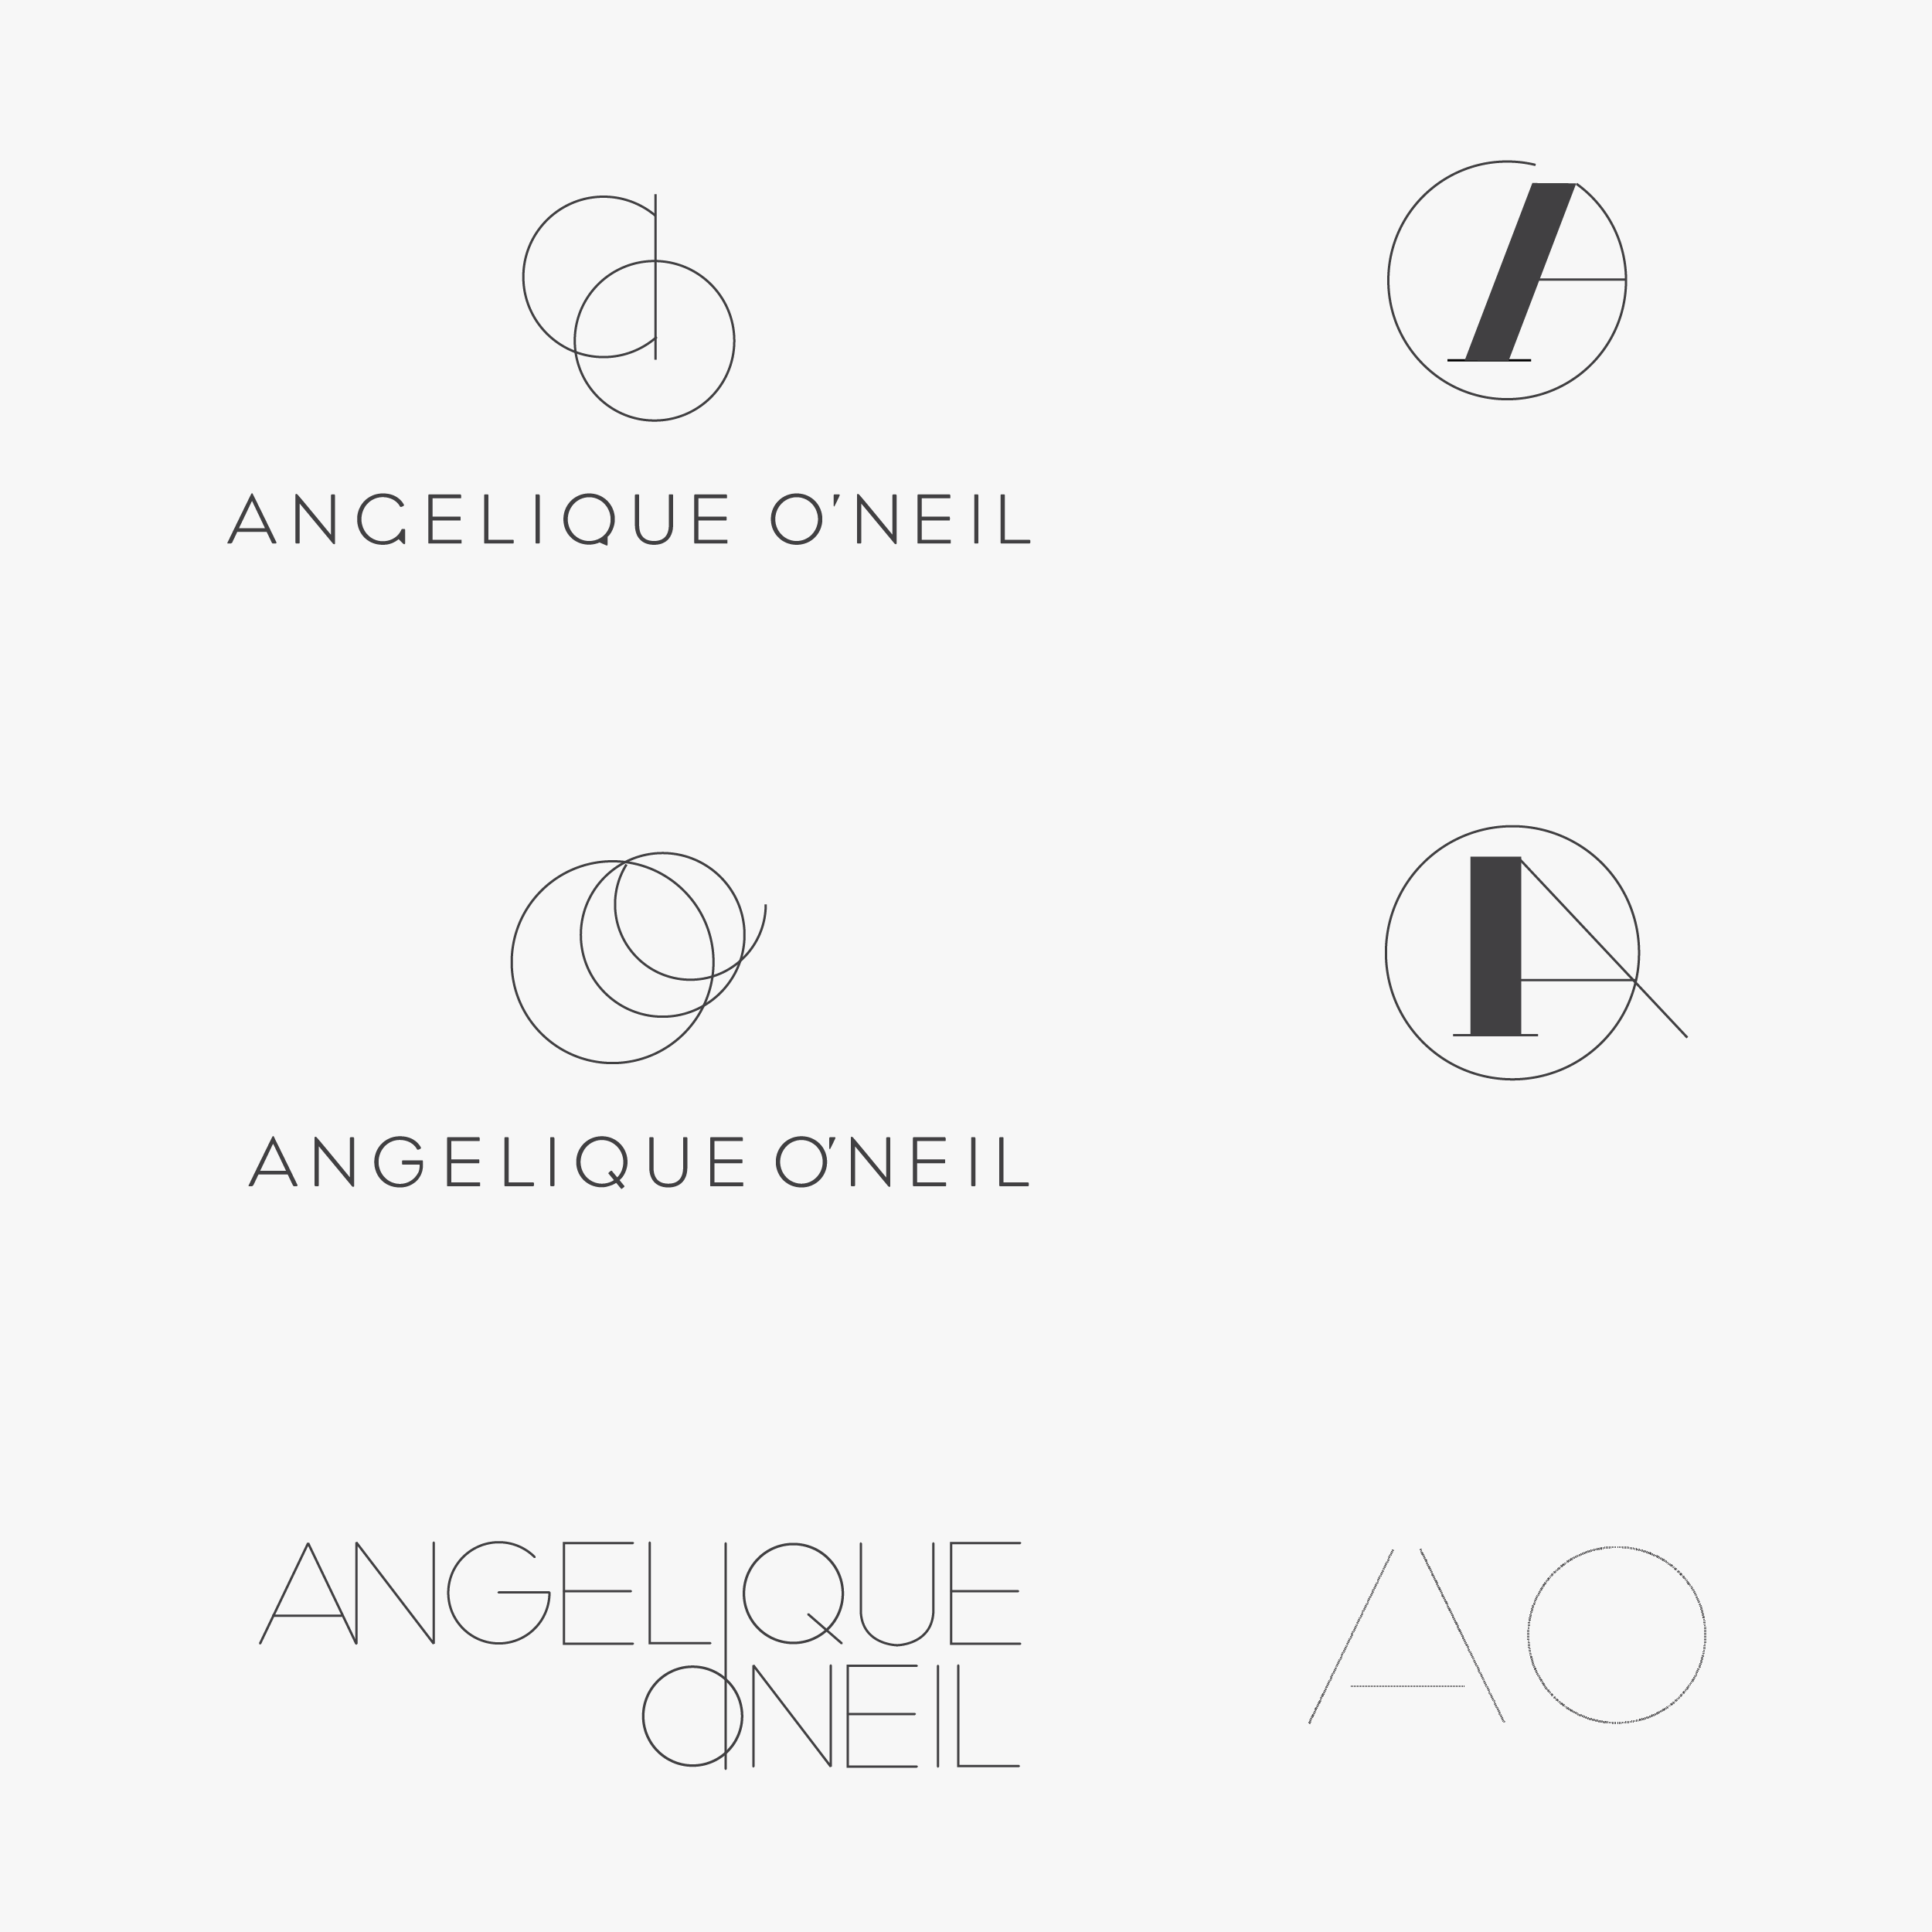 Angelique Oneil logo sketch.png